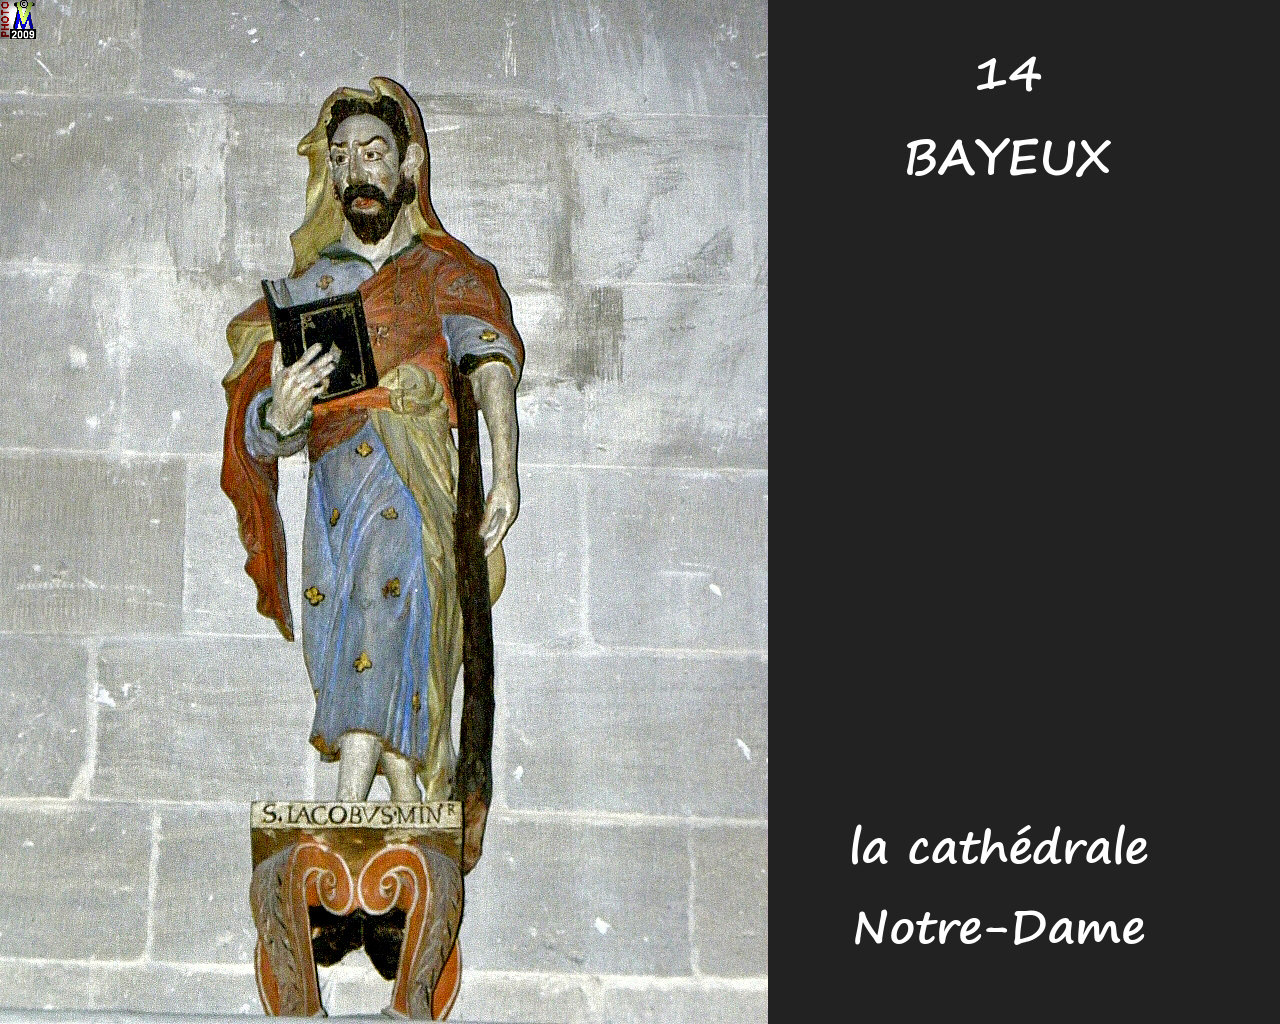 14BAYEUX_cathedrale_252.jpg